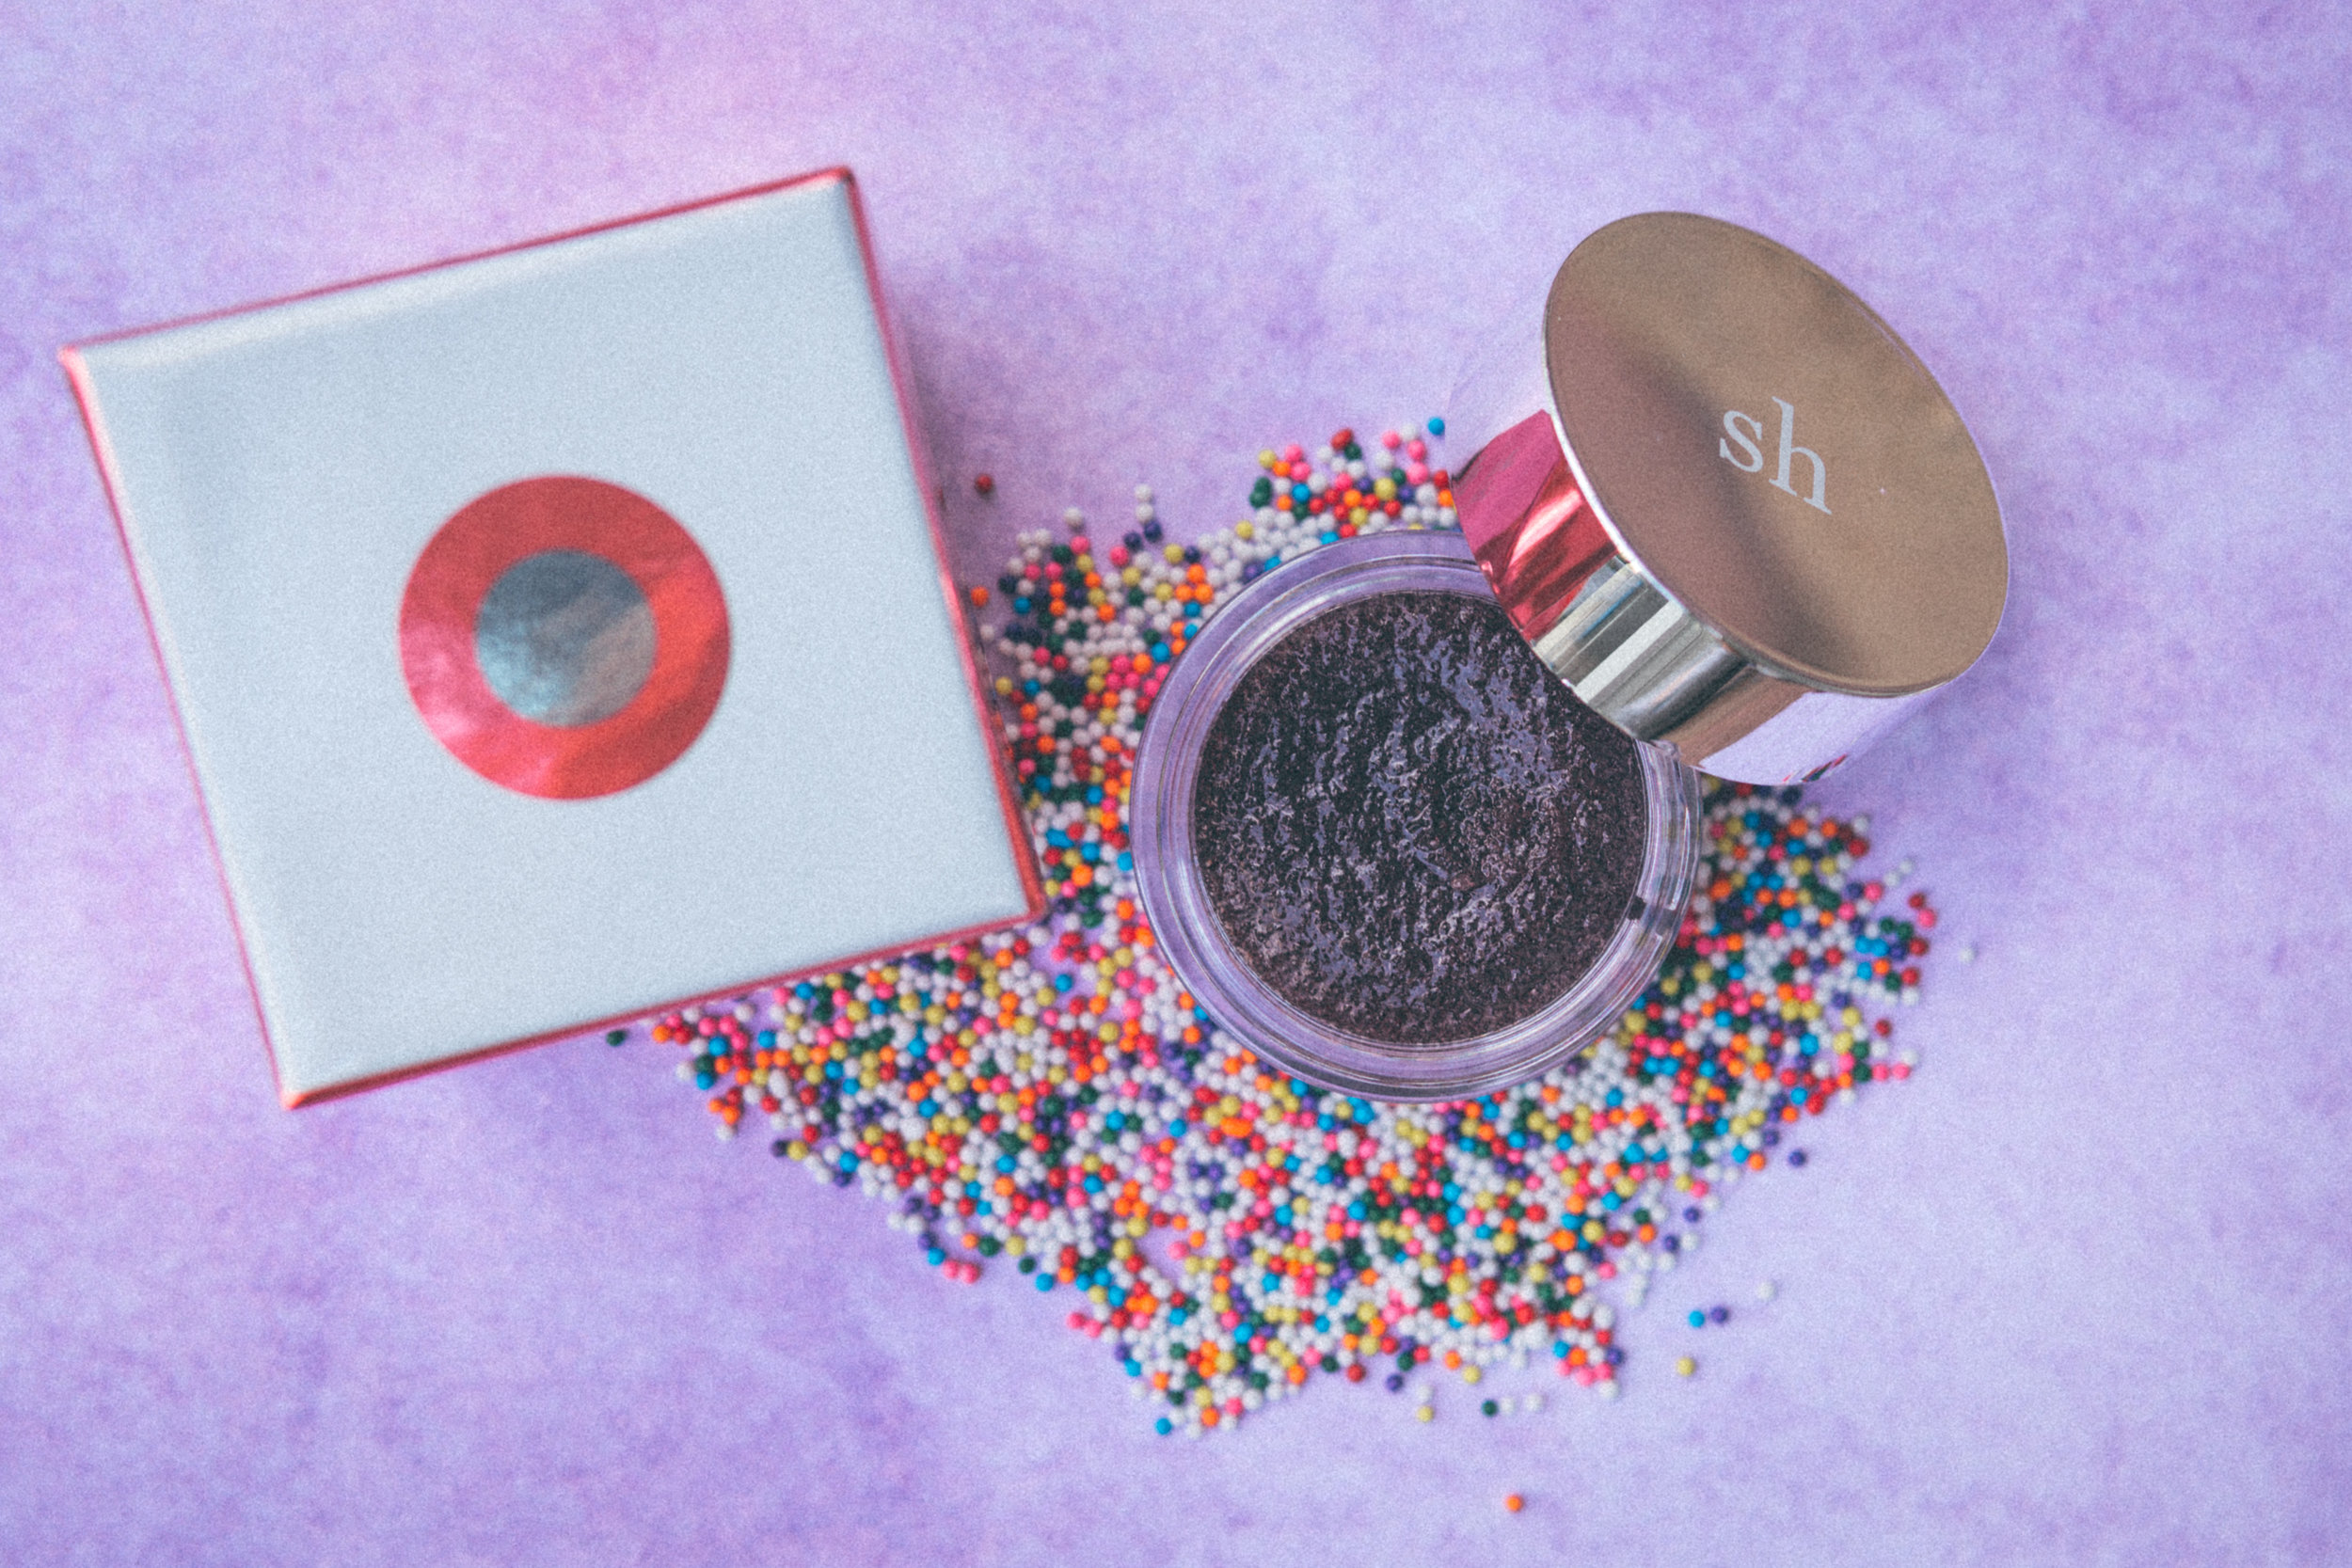 Sara Happ Sprinkles Red Velvet Lip Scrub - Rich, warm chocolate infused with hints of silky cream cheese combine to eliminate dry, flaky skin, immediately leaving lips soft &supple. I'm admittedly lazy when it comes to beauty, and while I used to forget to apply lip scrub, the chocolatey deliciousness of this is incredibly motivating.